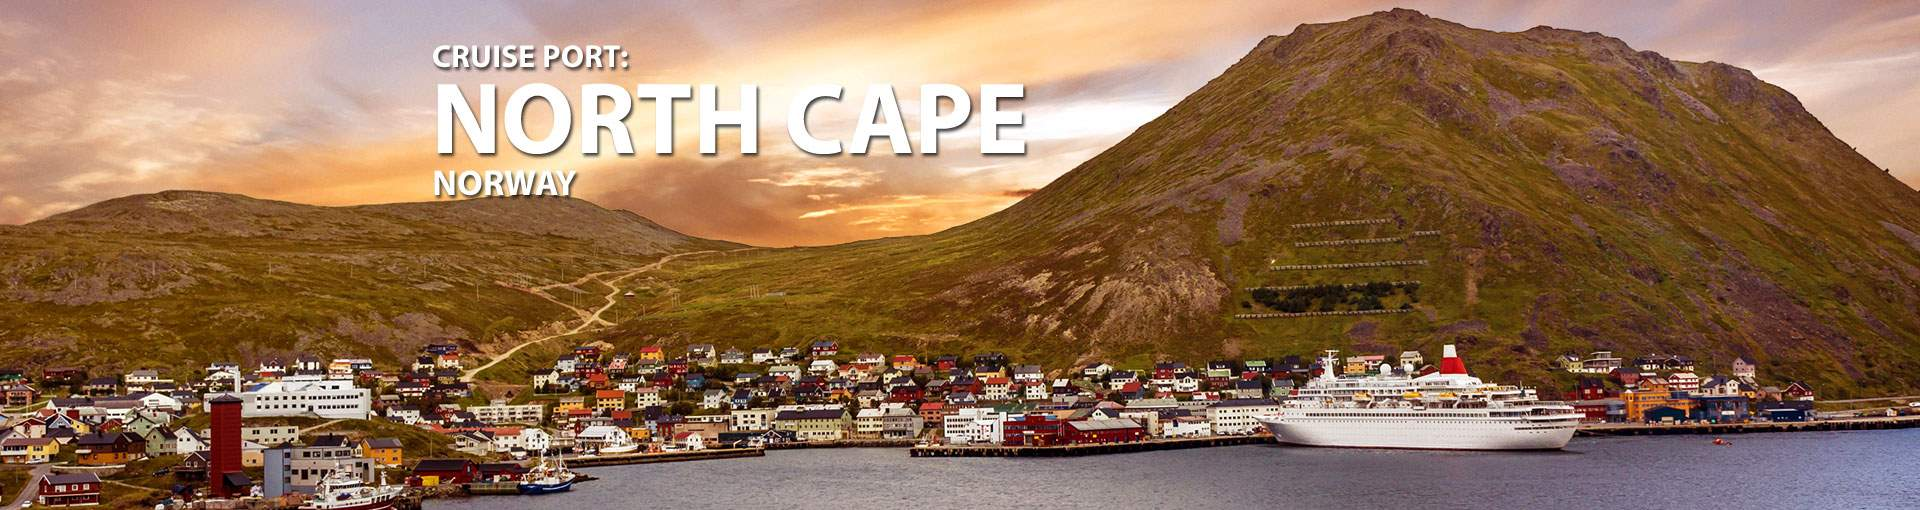 Cruises to North Cape, Norway